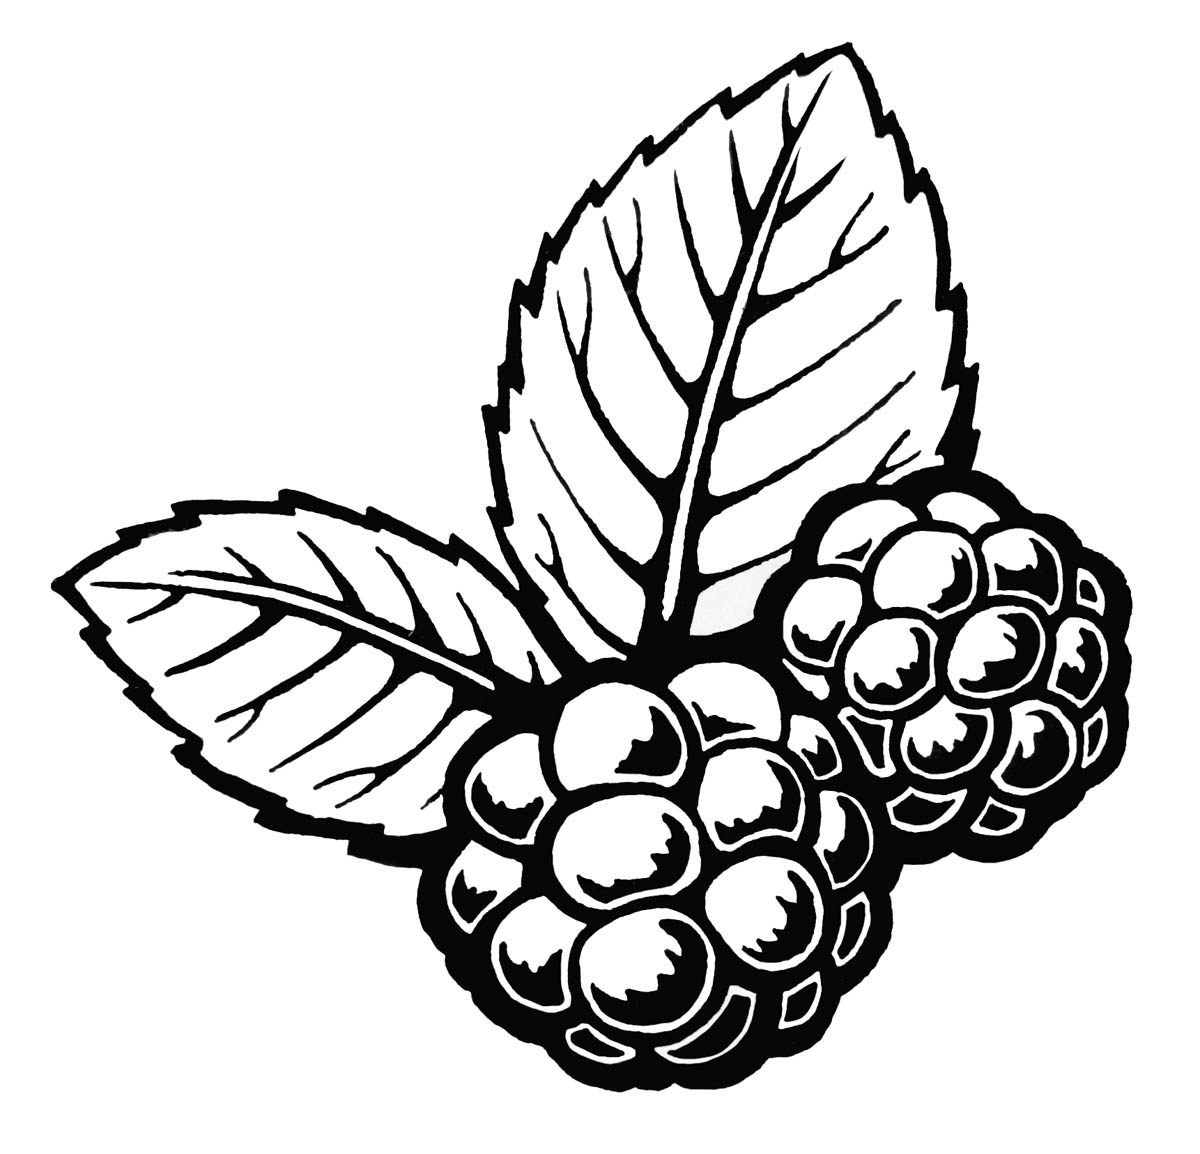 coloring pages blackberries - photo#35